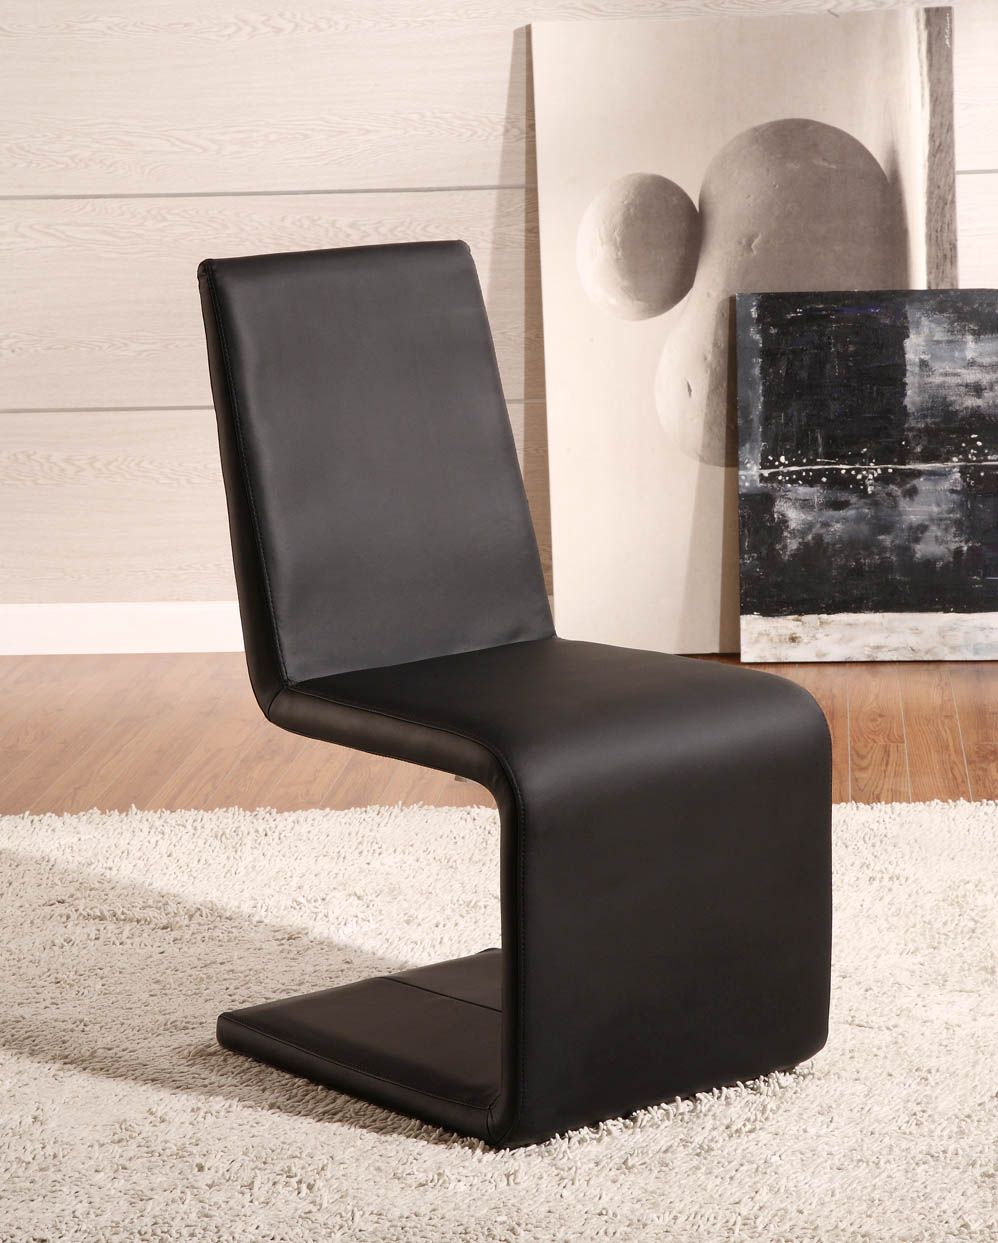 Black upholstered dining chairs - John Lewis Modern Unique Shape Armless Upholstered Dining Chair Design Feature Dark Brown Faux Leather Upholstery